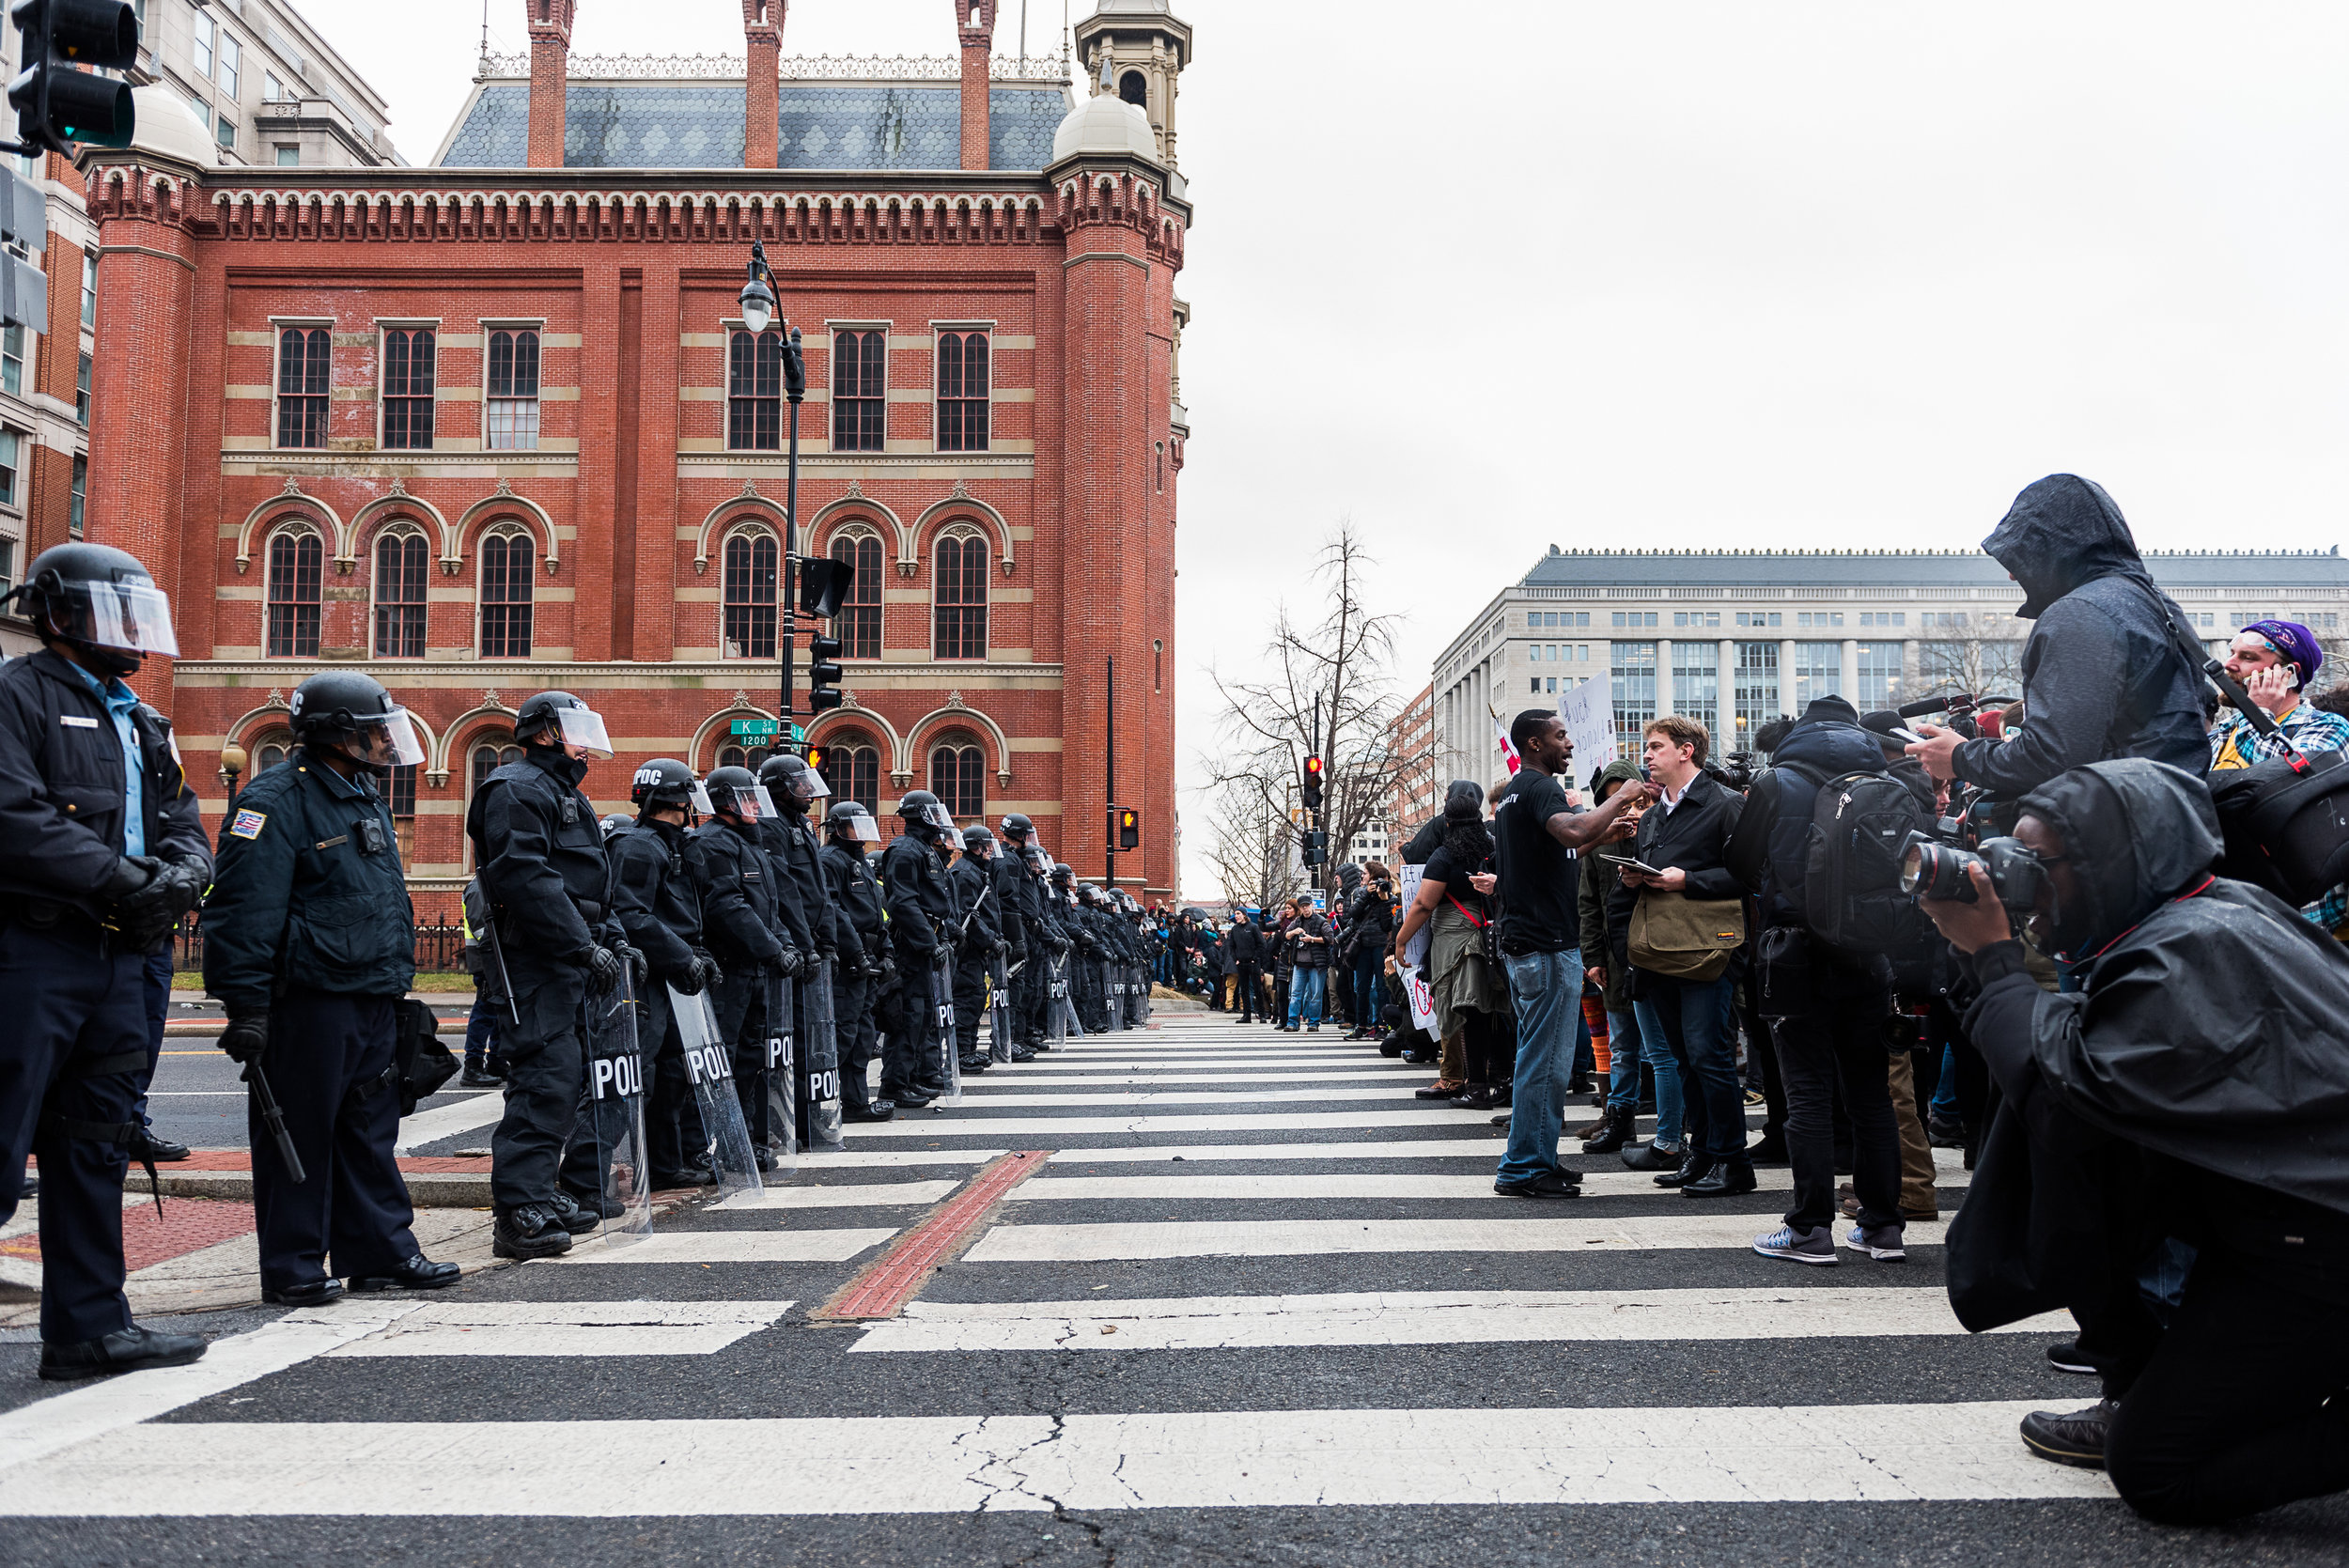 Police officers dressed in riot gear block K Street during a standoff with protesters, Friday, January 20, 2017.